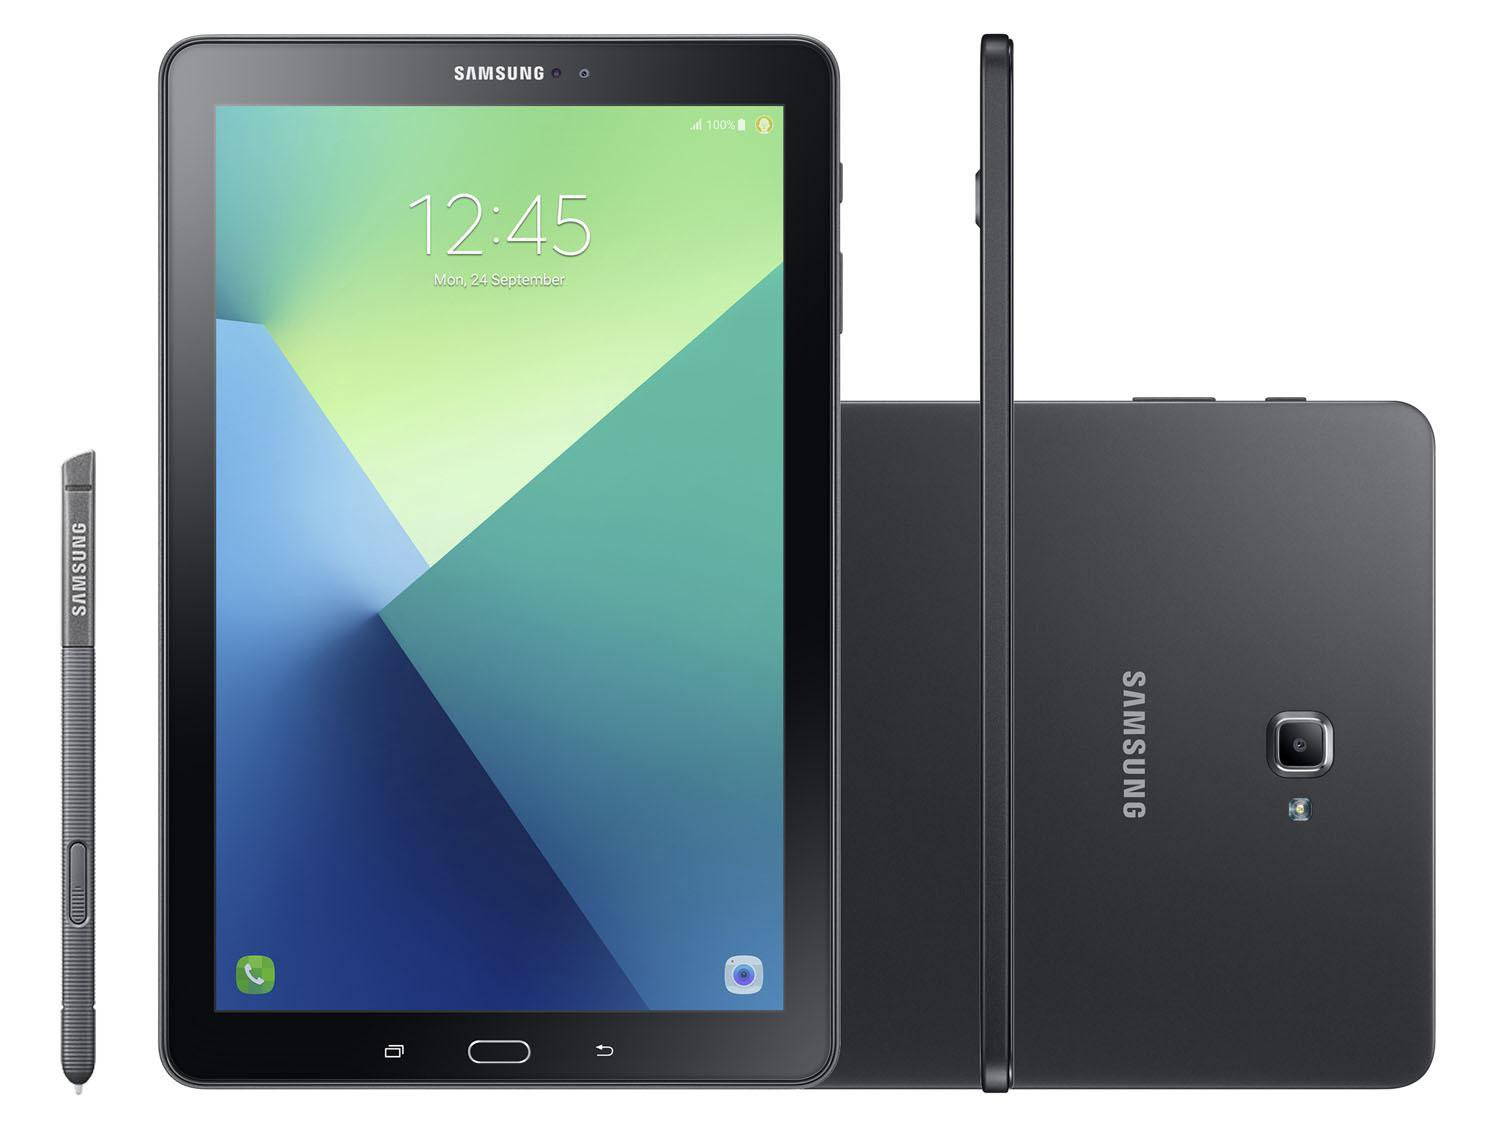 Foto 3 - Tablet Samsung Galaxy Tab A Note P585 16GB 10,1 - 4G Wi-Fi Android 7 Proc. Octa Core Câm 8MP